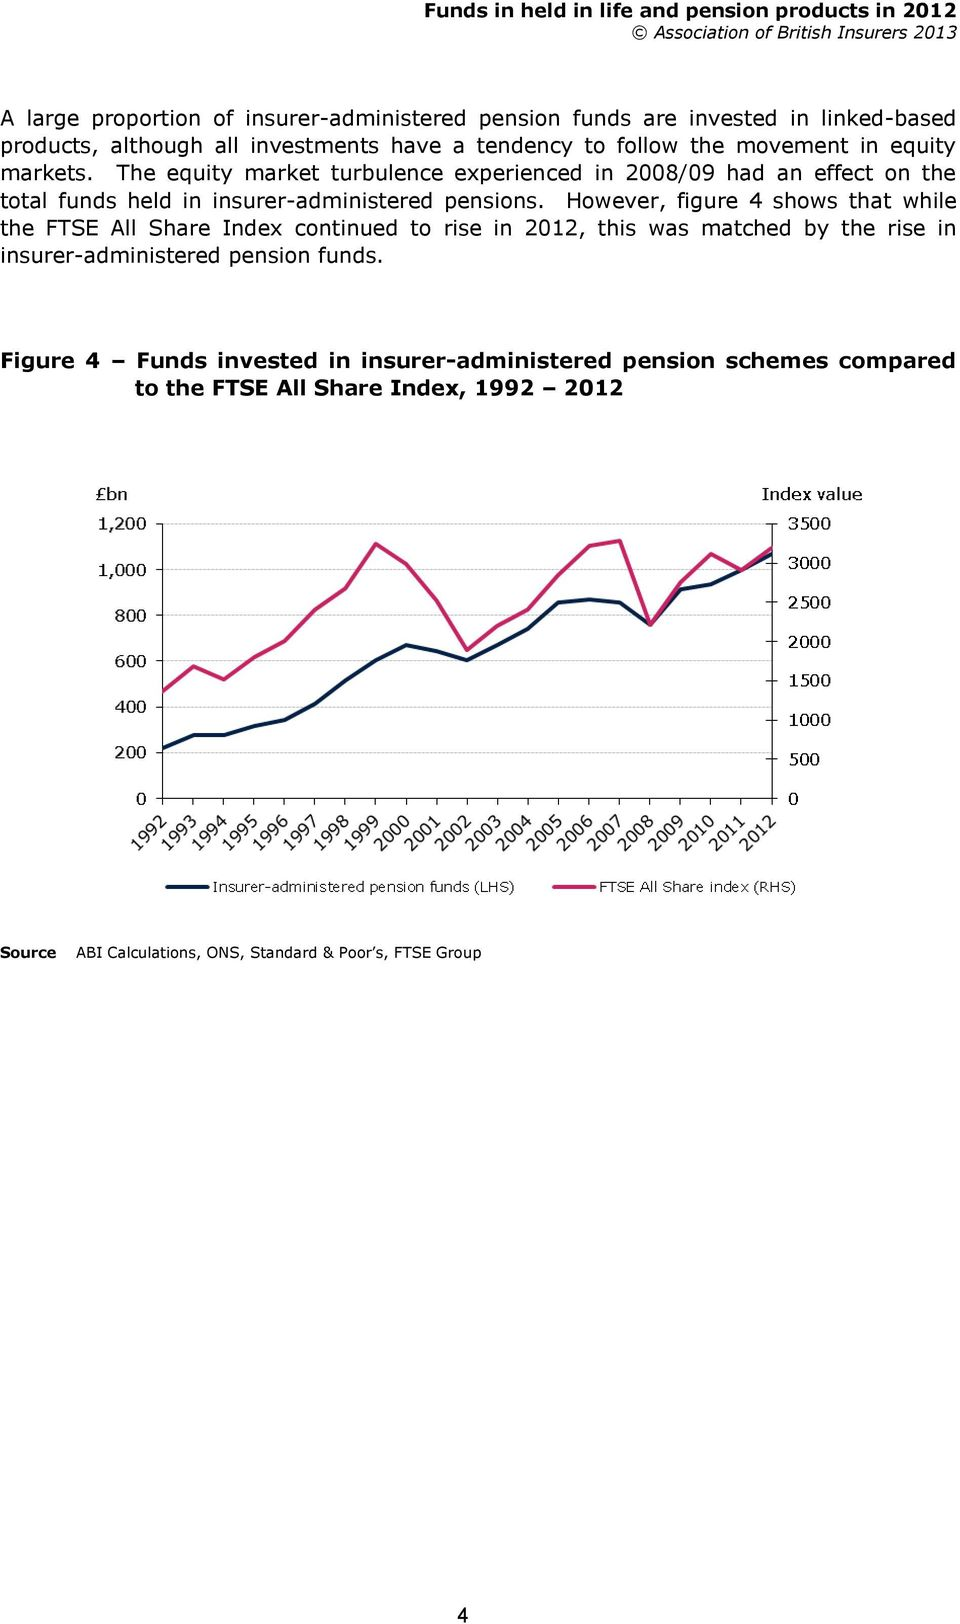 However, figure 4 shows that while the FTSE All Share Index continued to rise in 2012, this was matched by the rise in insurer-administered pension funds.